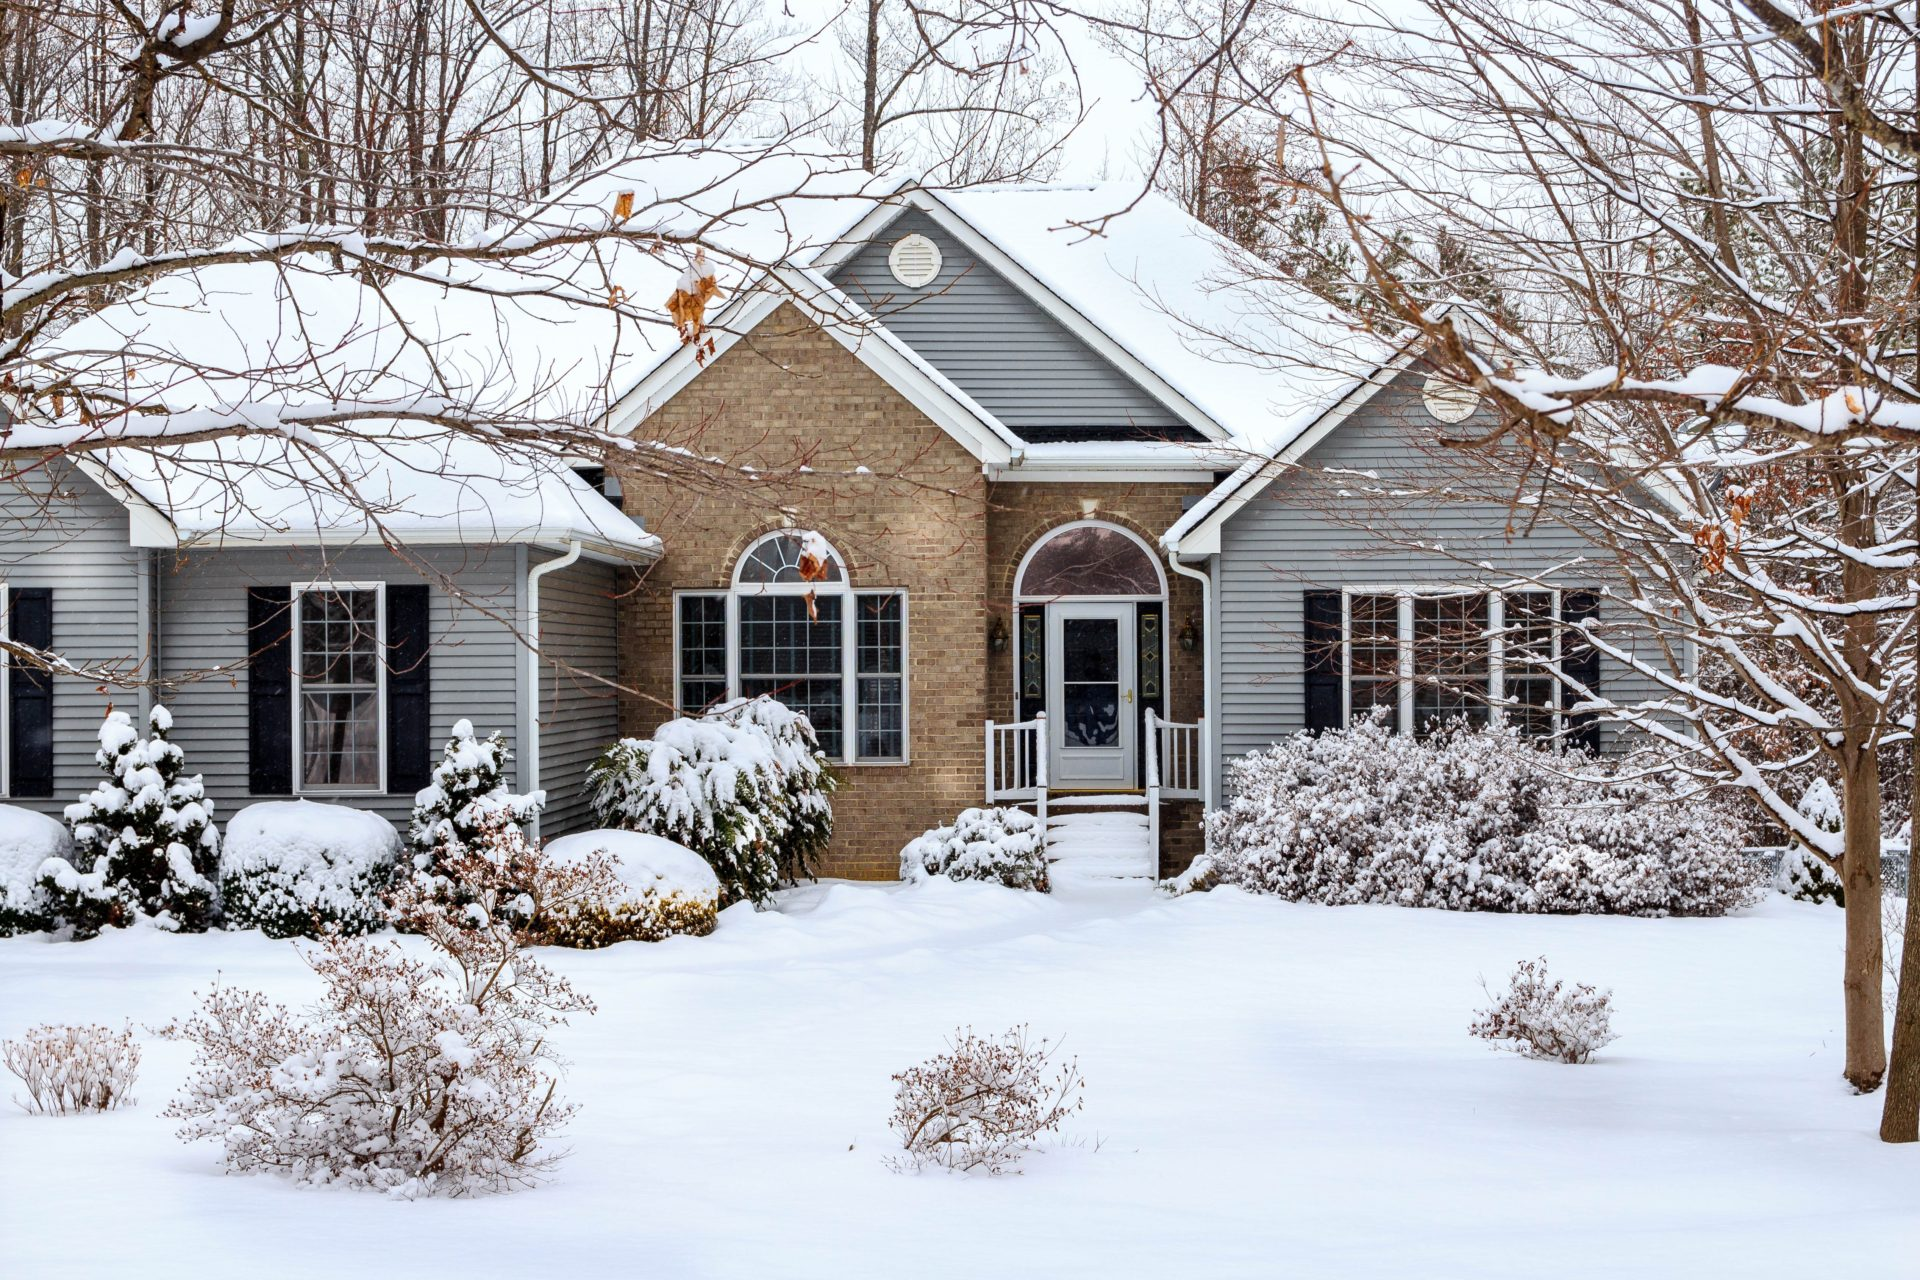 preventative HVAC maintenance keeps your home warm